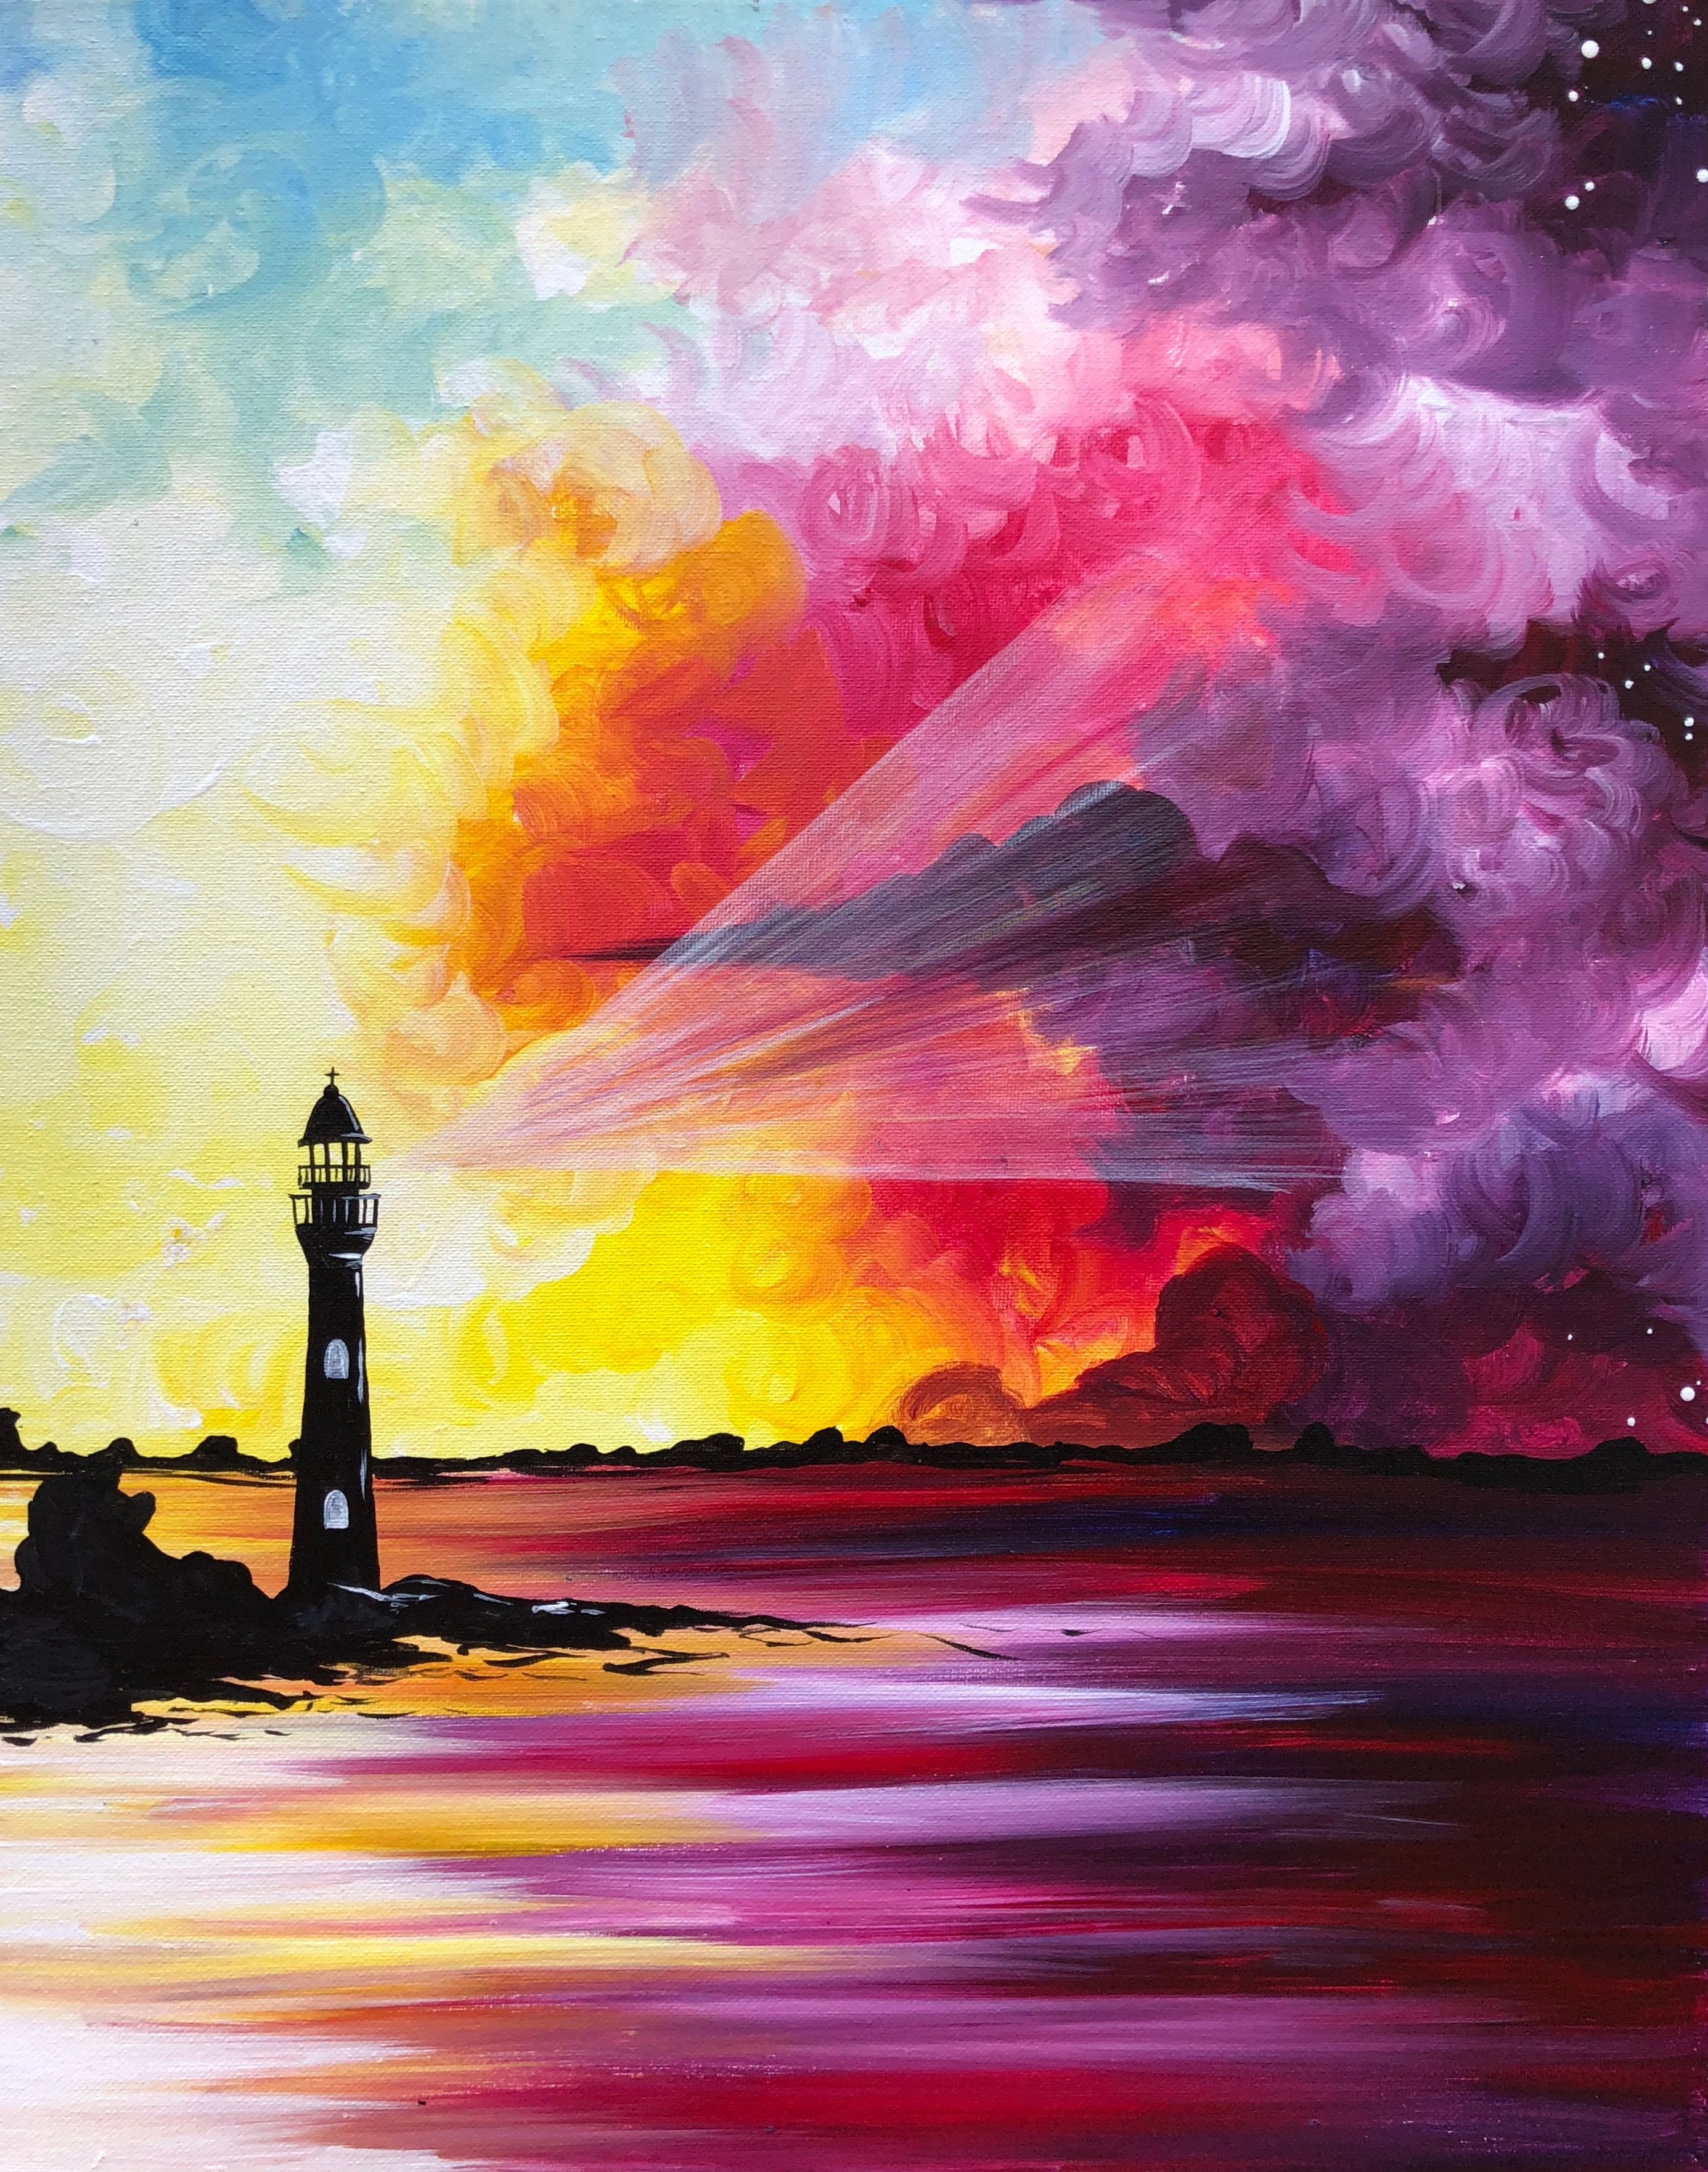 Hey! Check out Sorbet Sunset Lighthouse at Mimi's Cafe